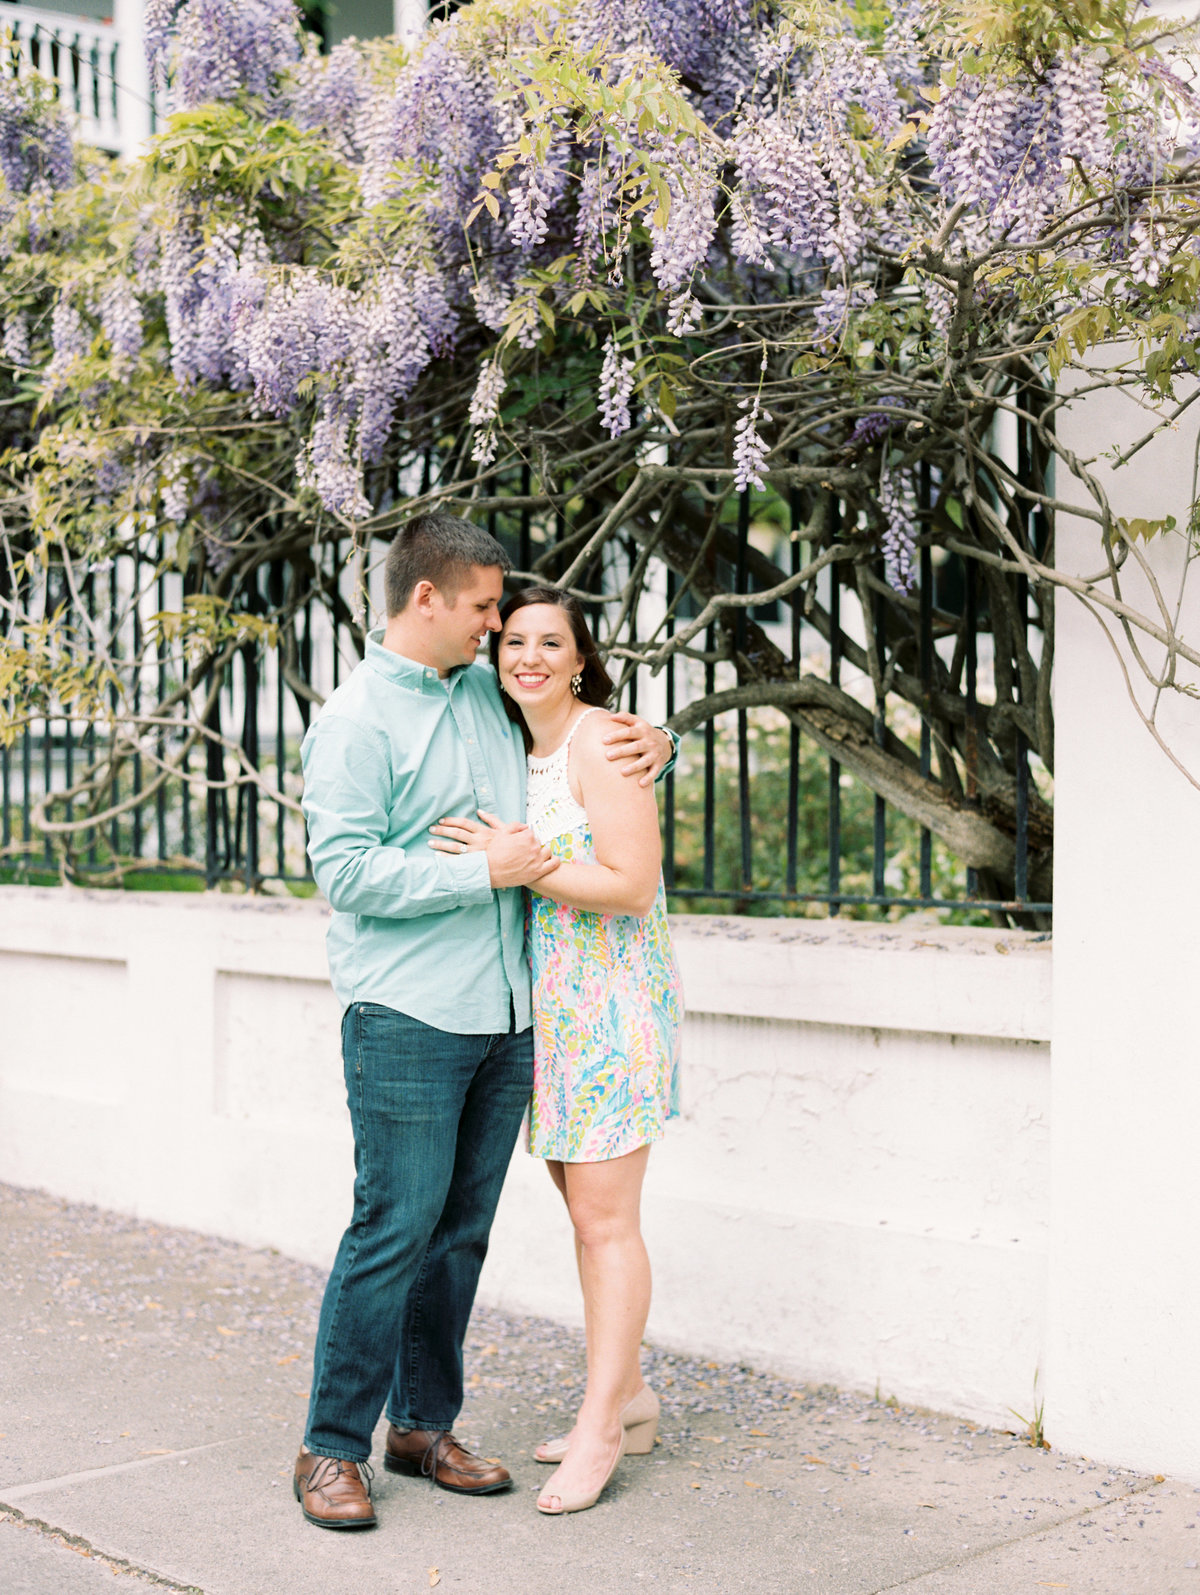 charleston-engagement-photos-wedding-photographer-philip-casey-photo-031